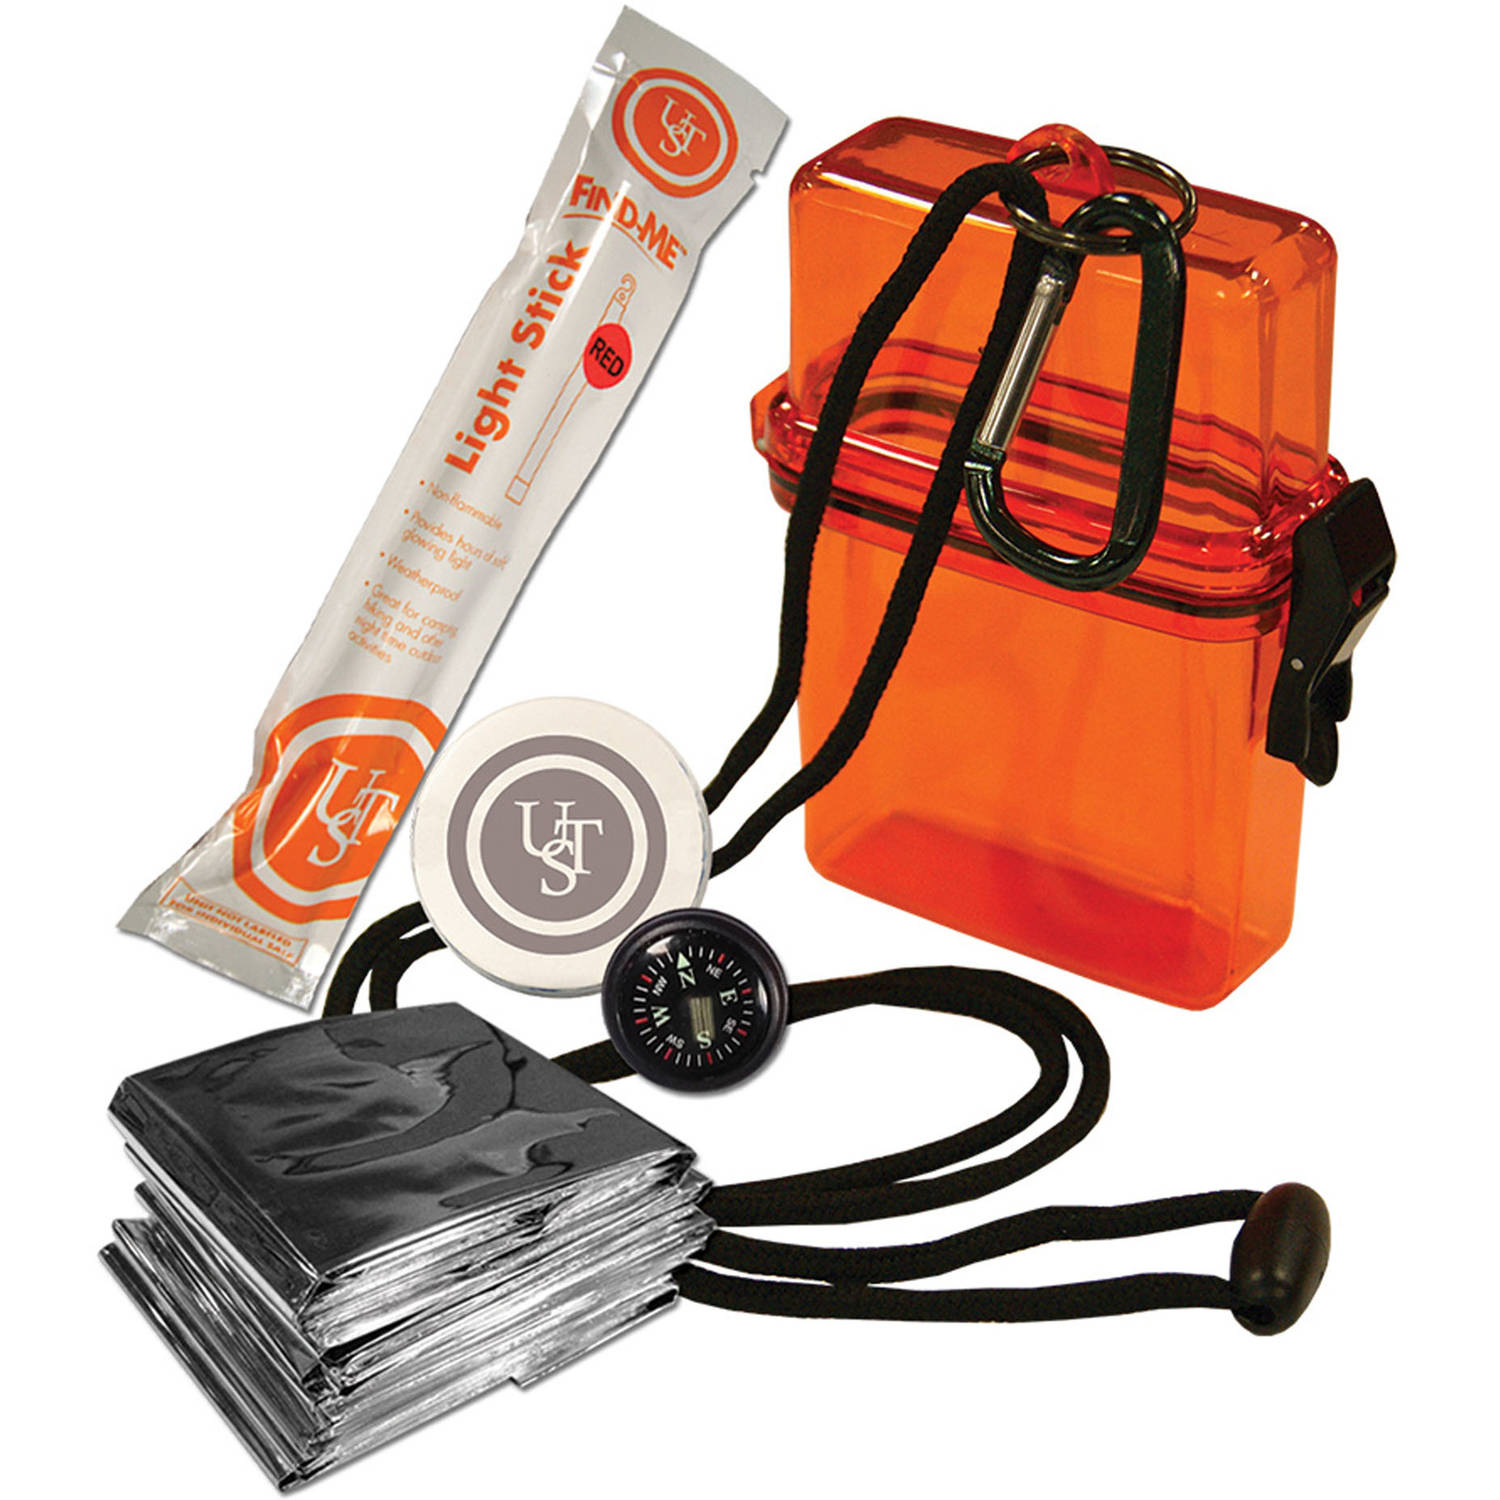 Ultimate Survival Technologies Watertight Survival Kit 1.0, Orange by Ultimate Survival Technologies